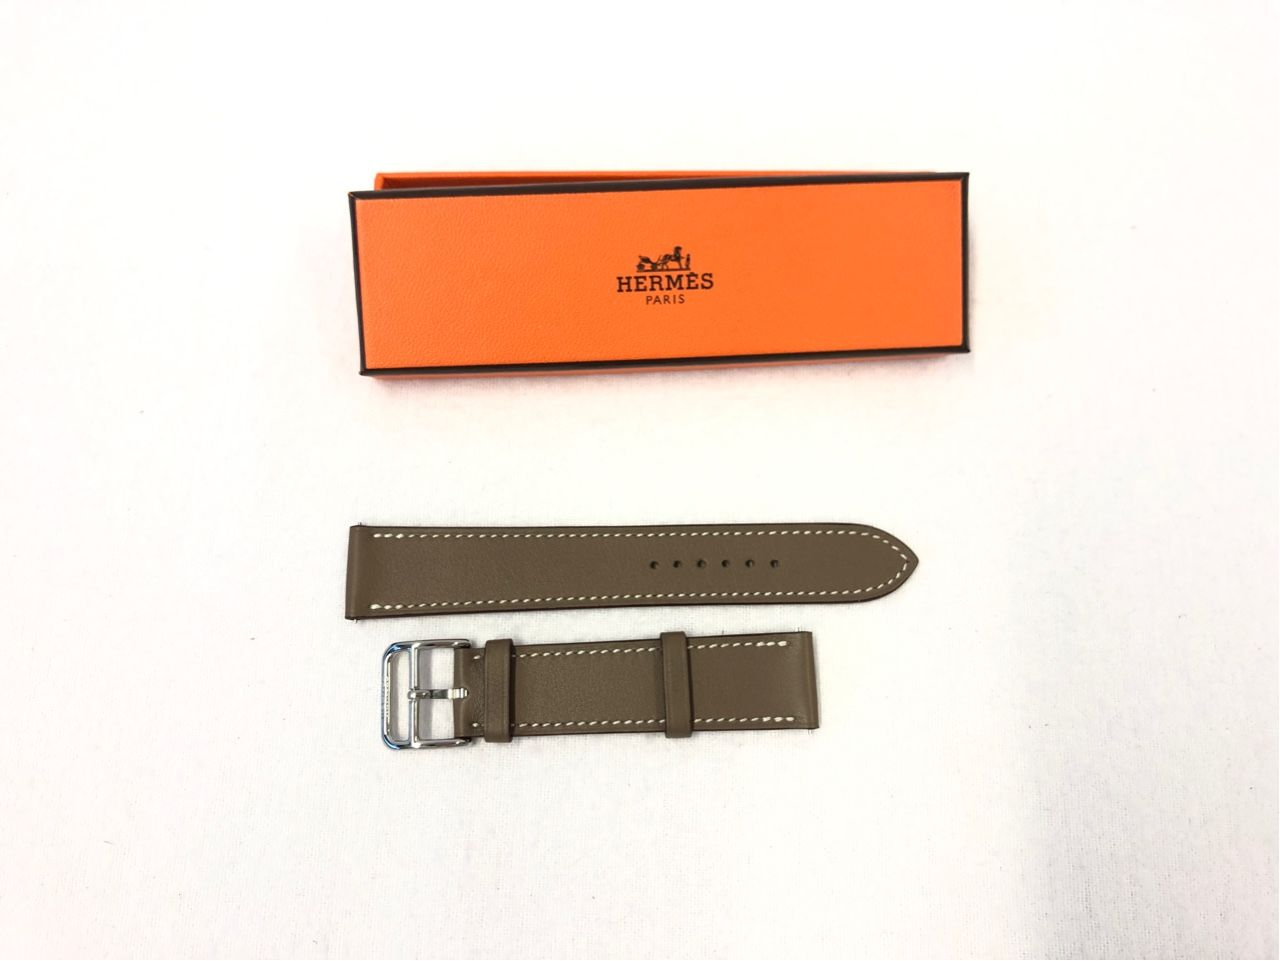 Hermes Armband fuer die Uhr Cape Cod, 29 x 29 W090ISWWK18